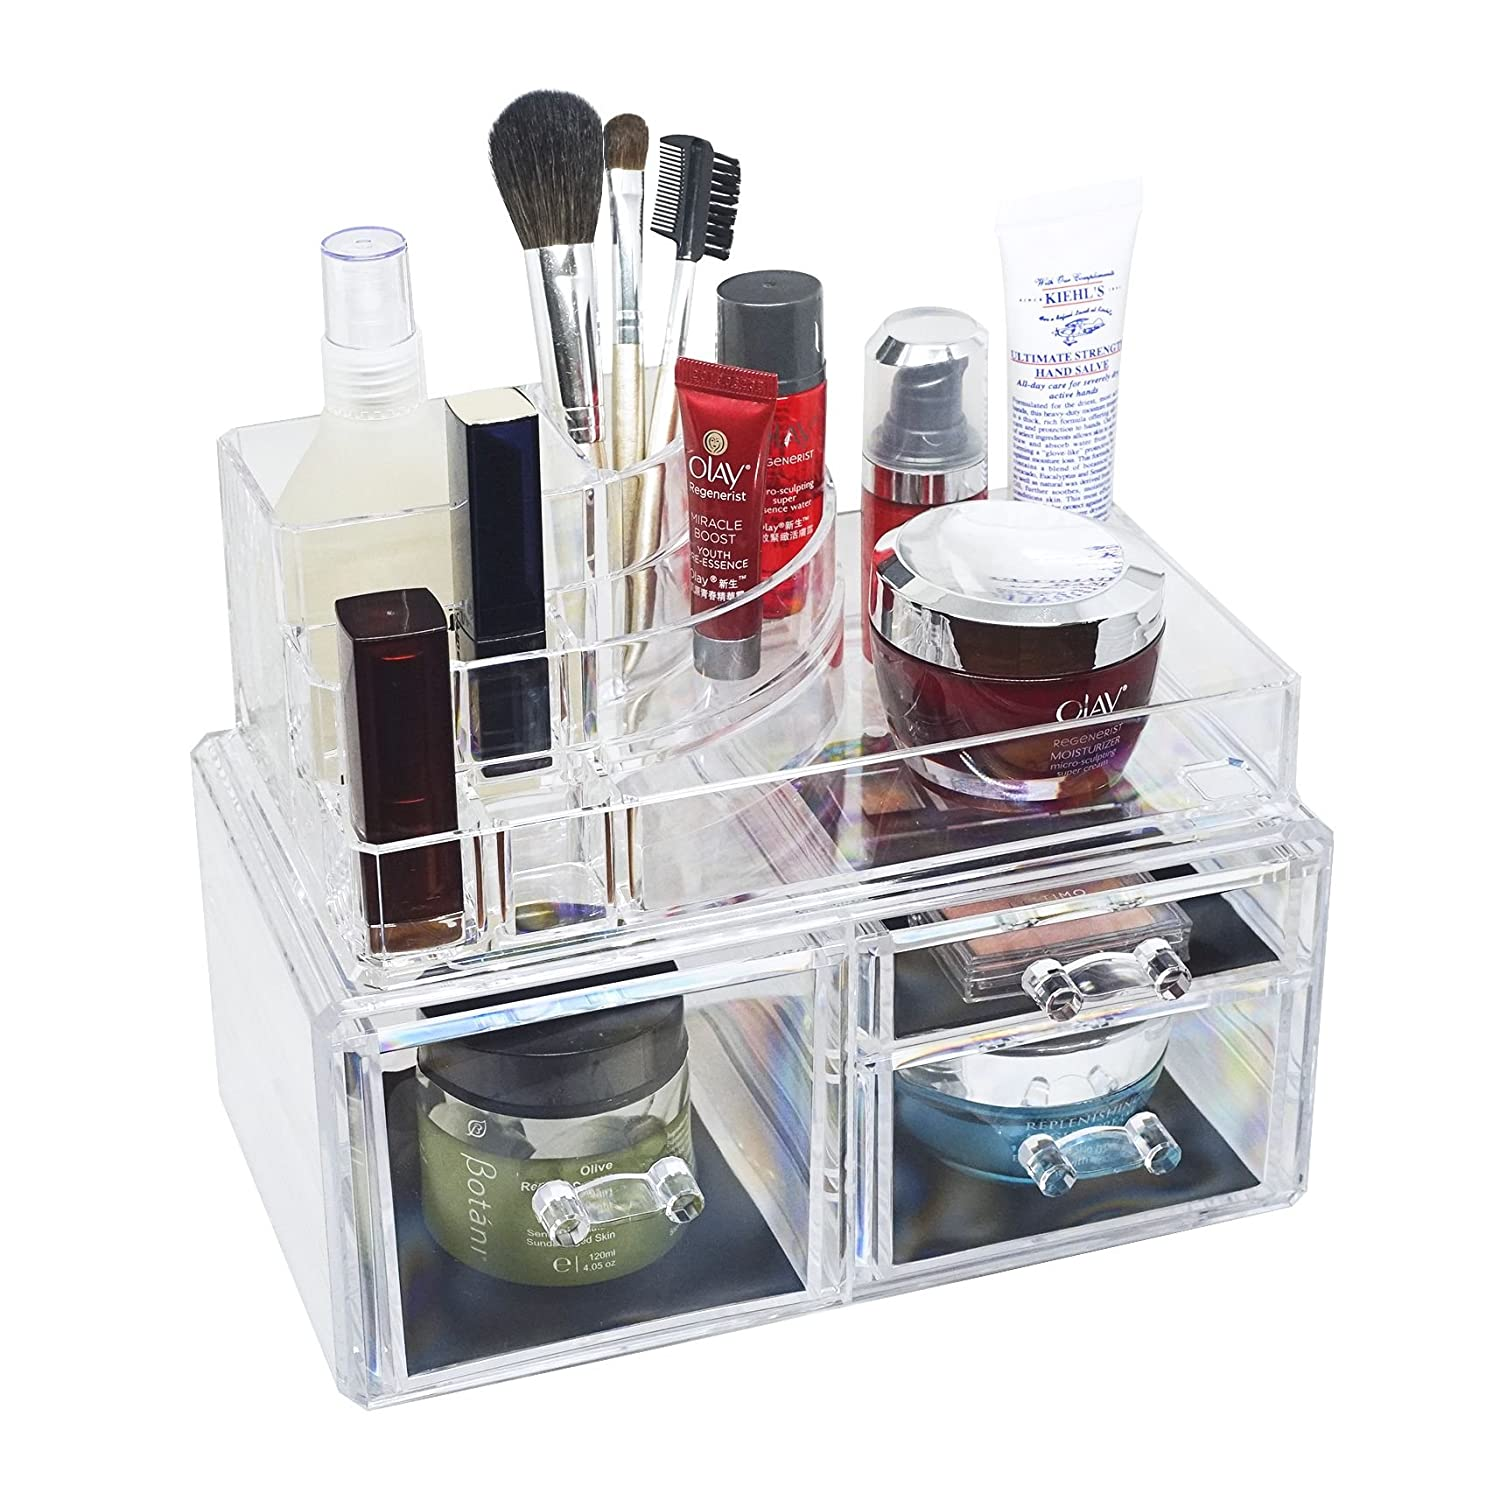 D'moda Designs Crystal Clear Acrylic Two Piece Makeup And Jewelry Organizer Set With Tray, Medium And Large Storage Drawers For Lipstick, Brushes, Compacts, Nail Polish And Cosmetics by D'moda Designs